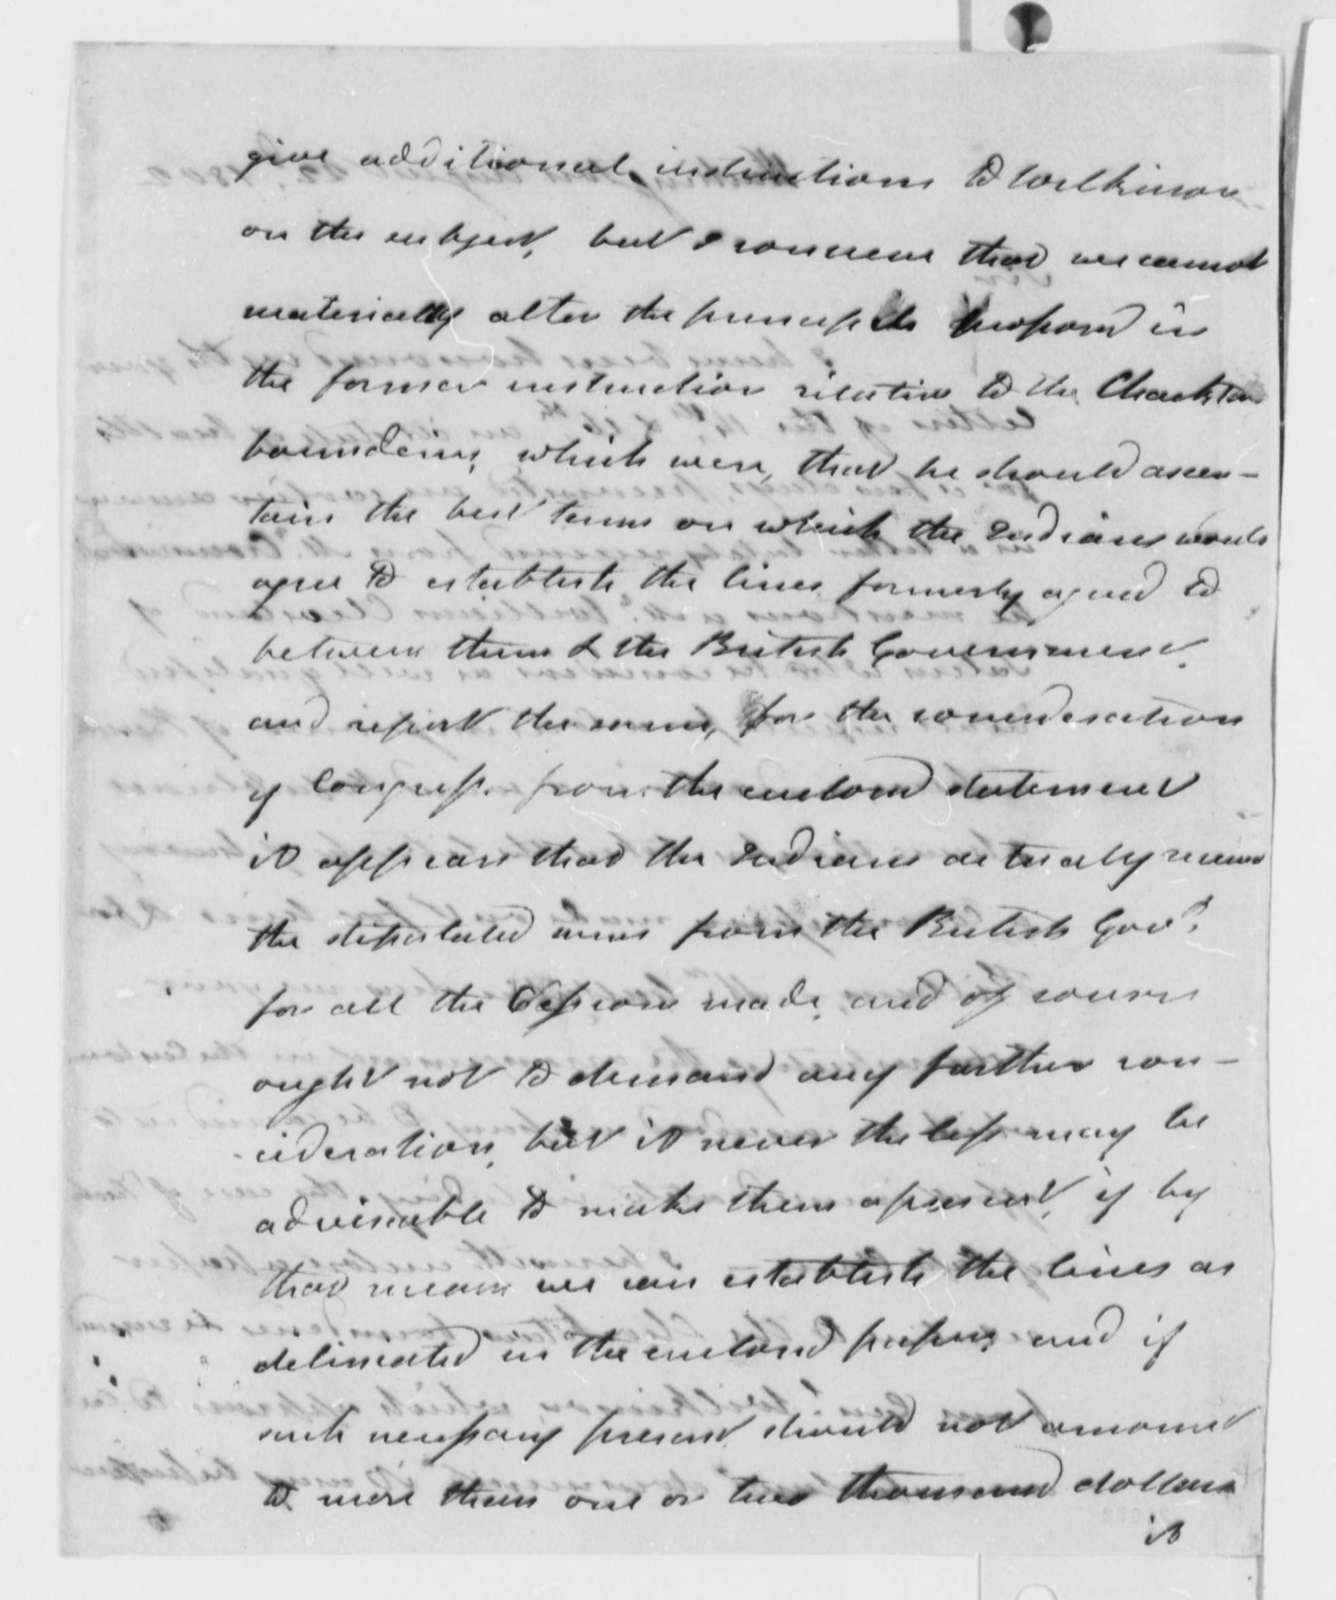 Henry Dearborn to Thomas Jefferson, August 22, 1802